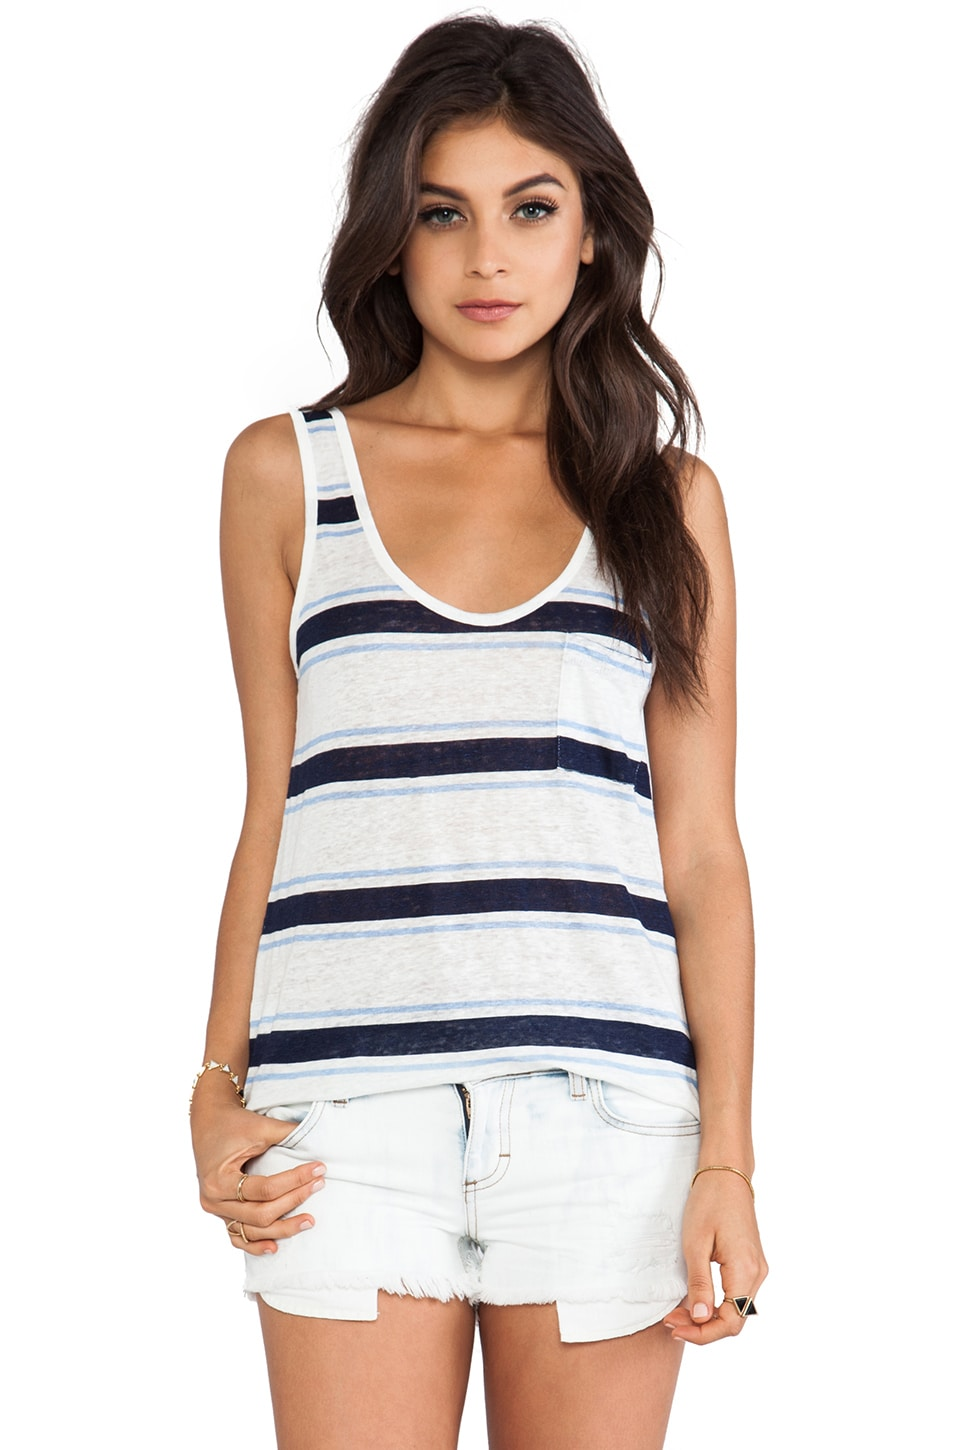 Joie Carmenelia Multicolor Striped Tank in Dark Navy